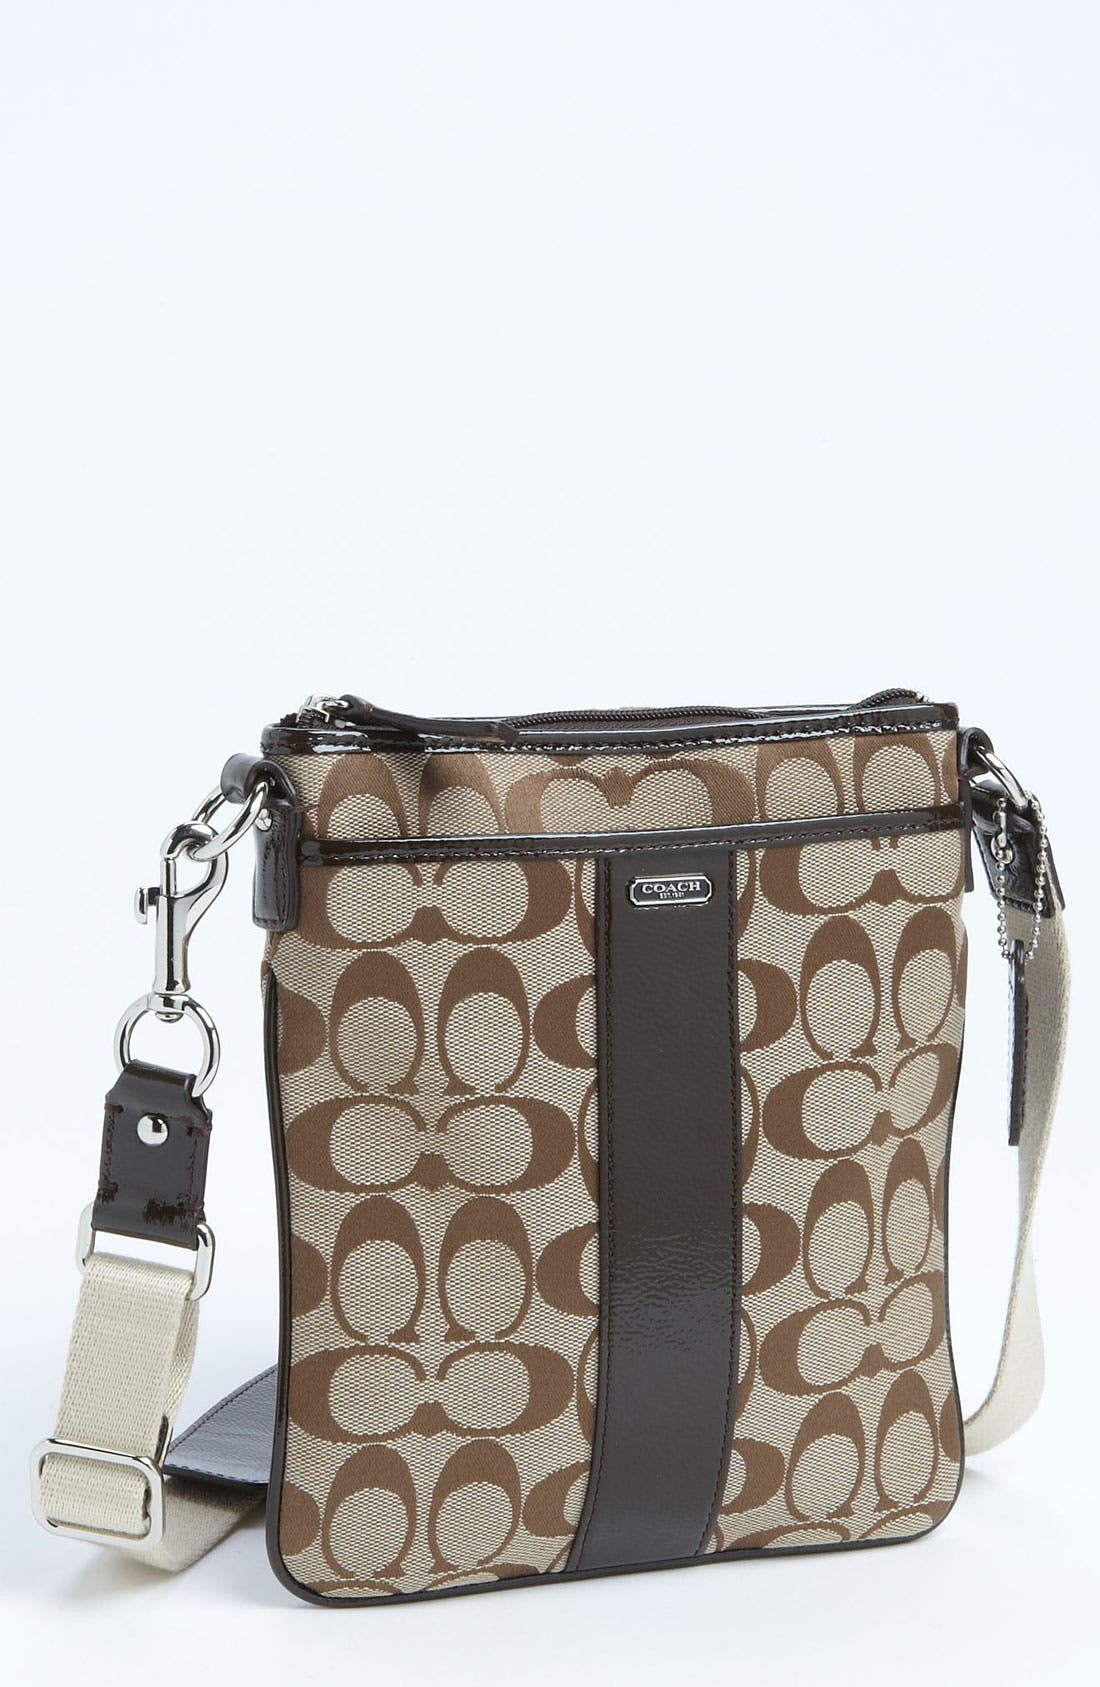 Alternate Image 1 Selected - COACH 'Signature - Swingpack' Crossbody Bag